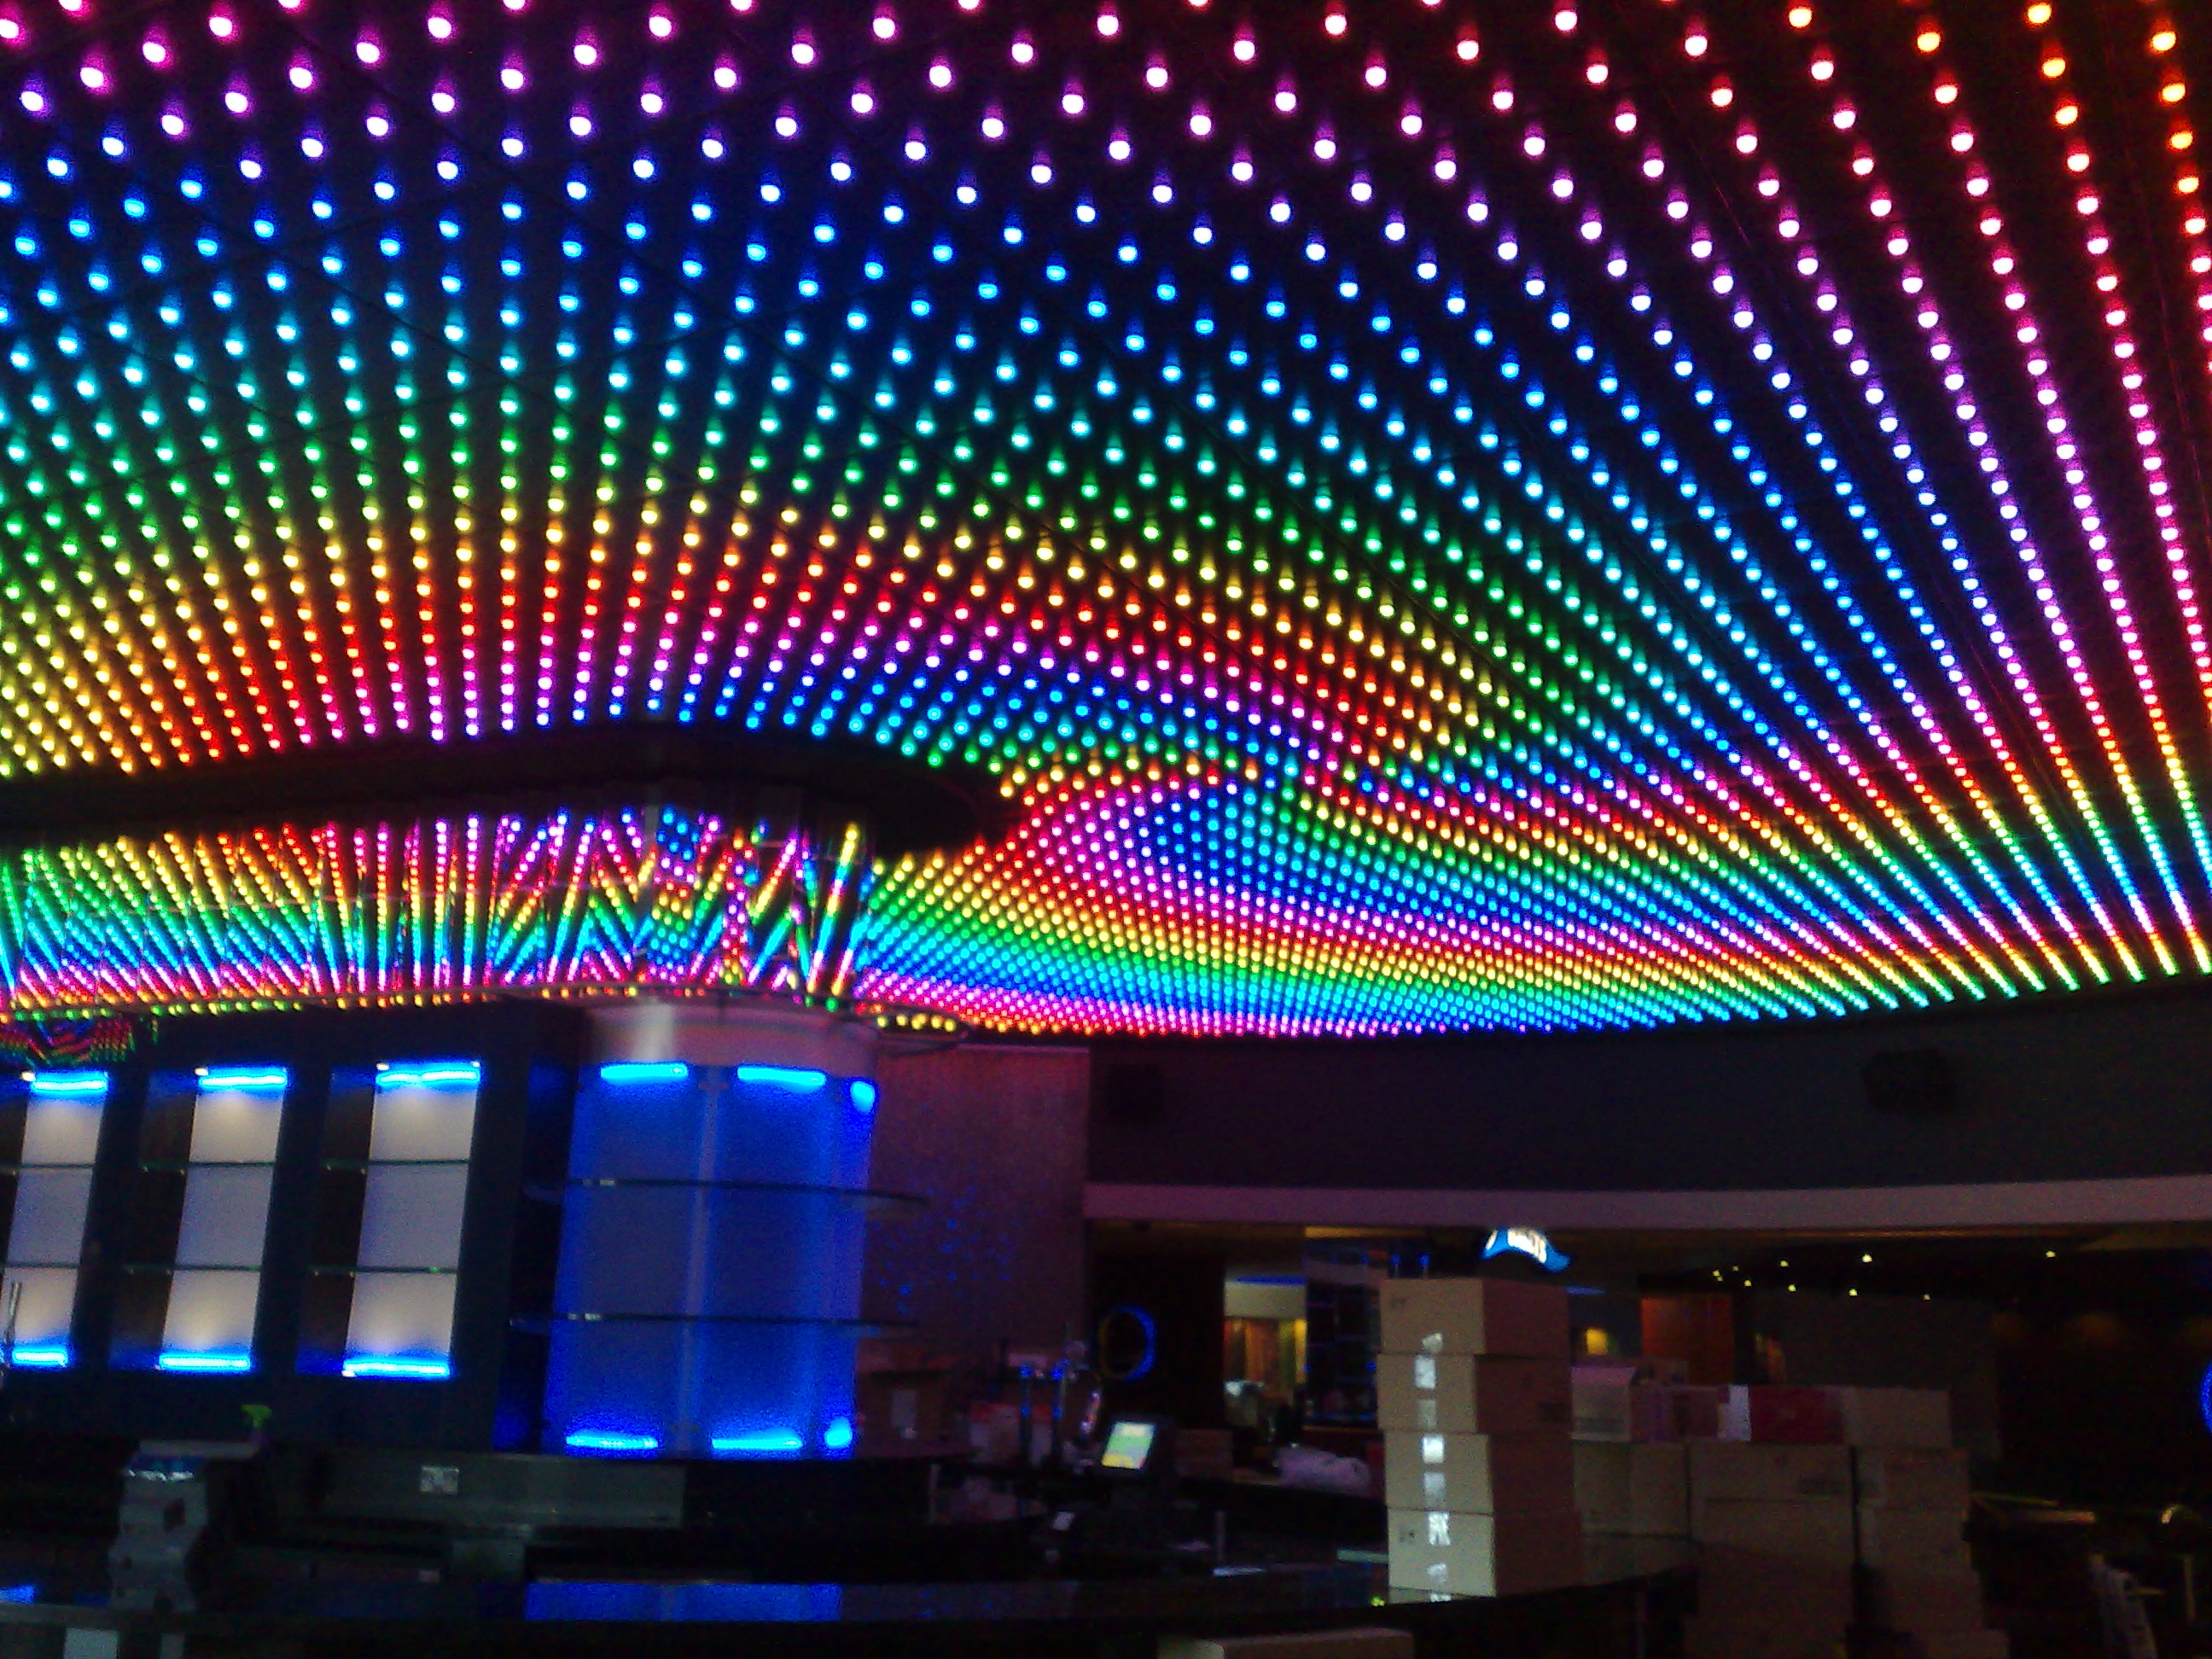 Ceiling Led Lighting Systems : Images about ceiling skylight on